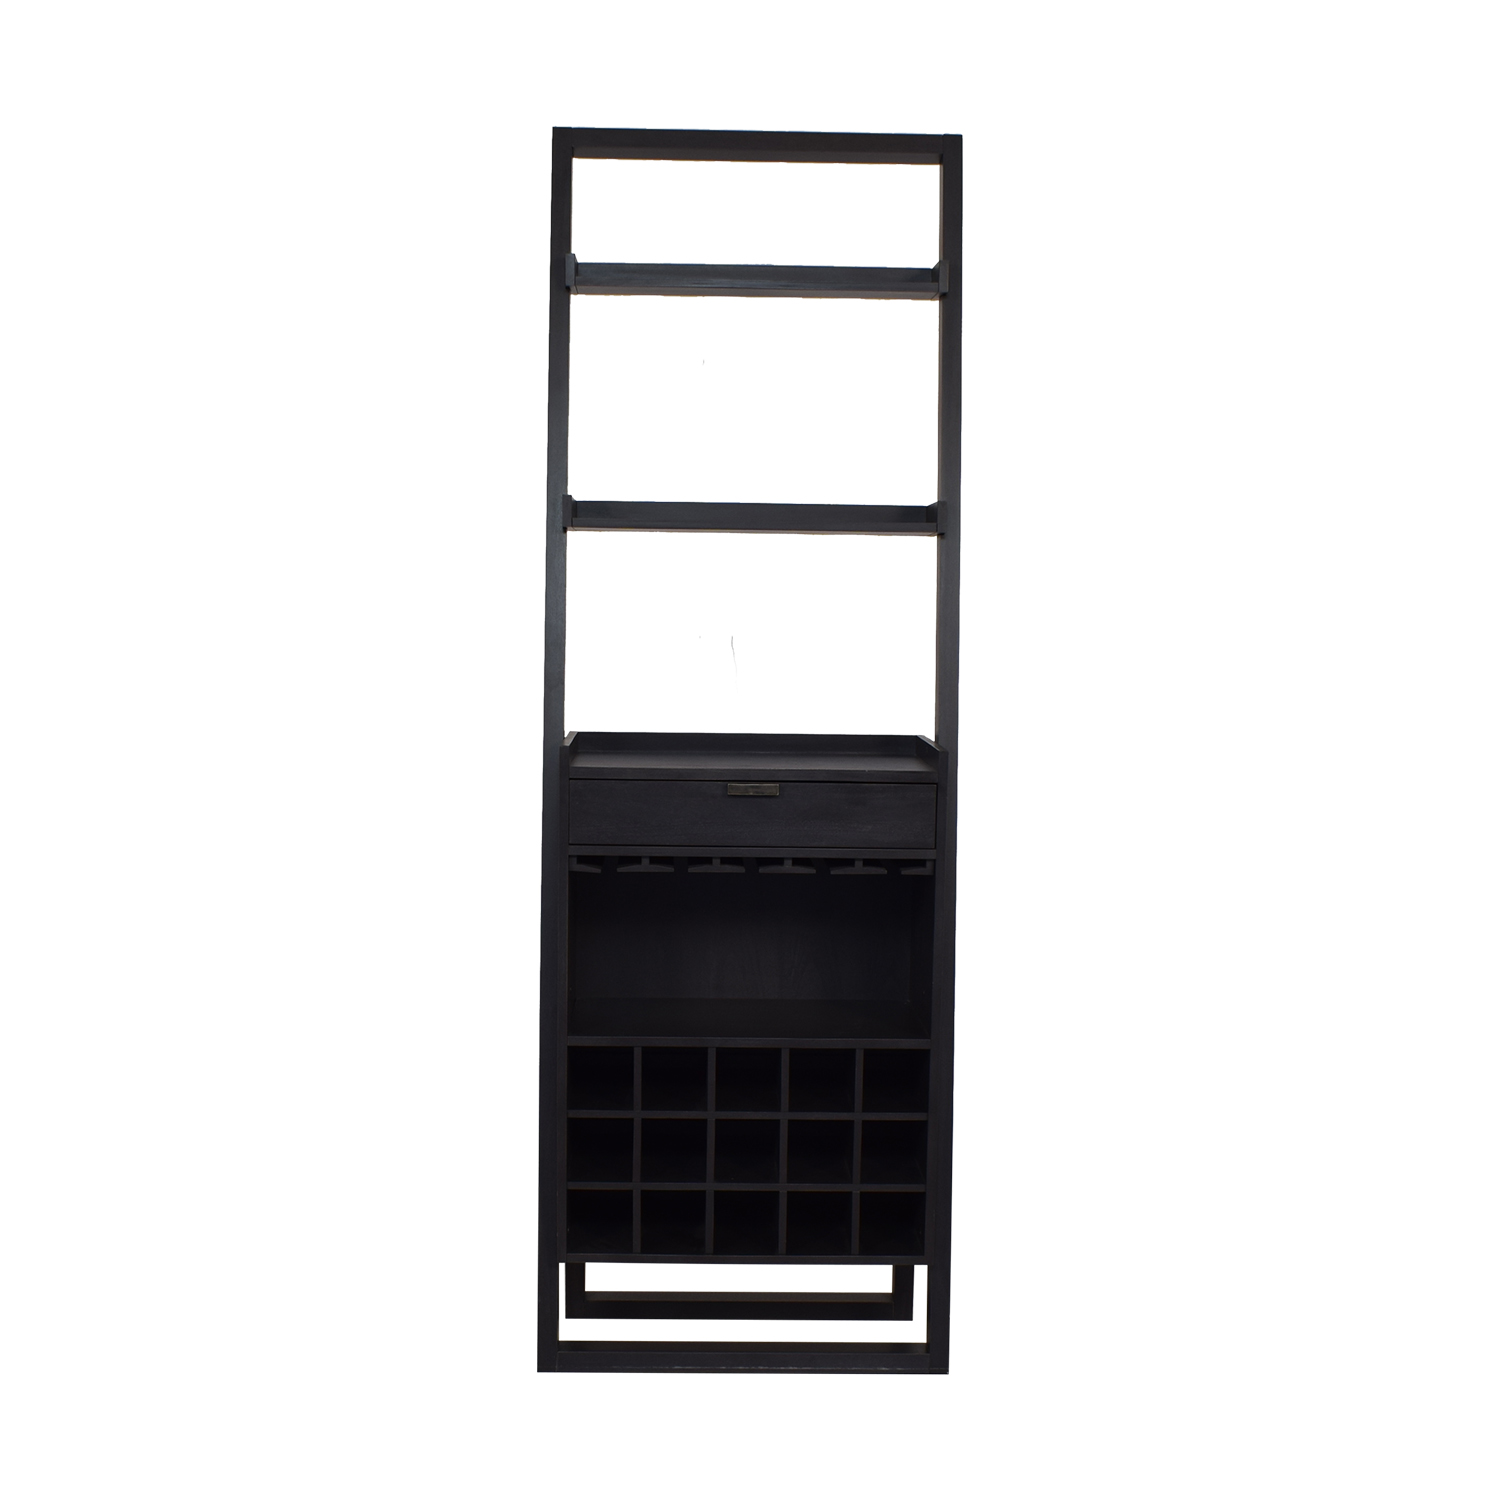 Crate & Barrel Crate & Barrel Sawyer Leaning Bar for sale